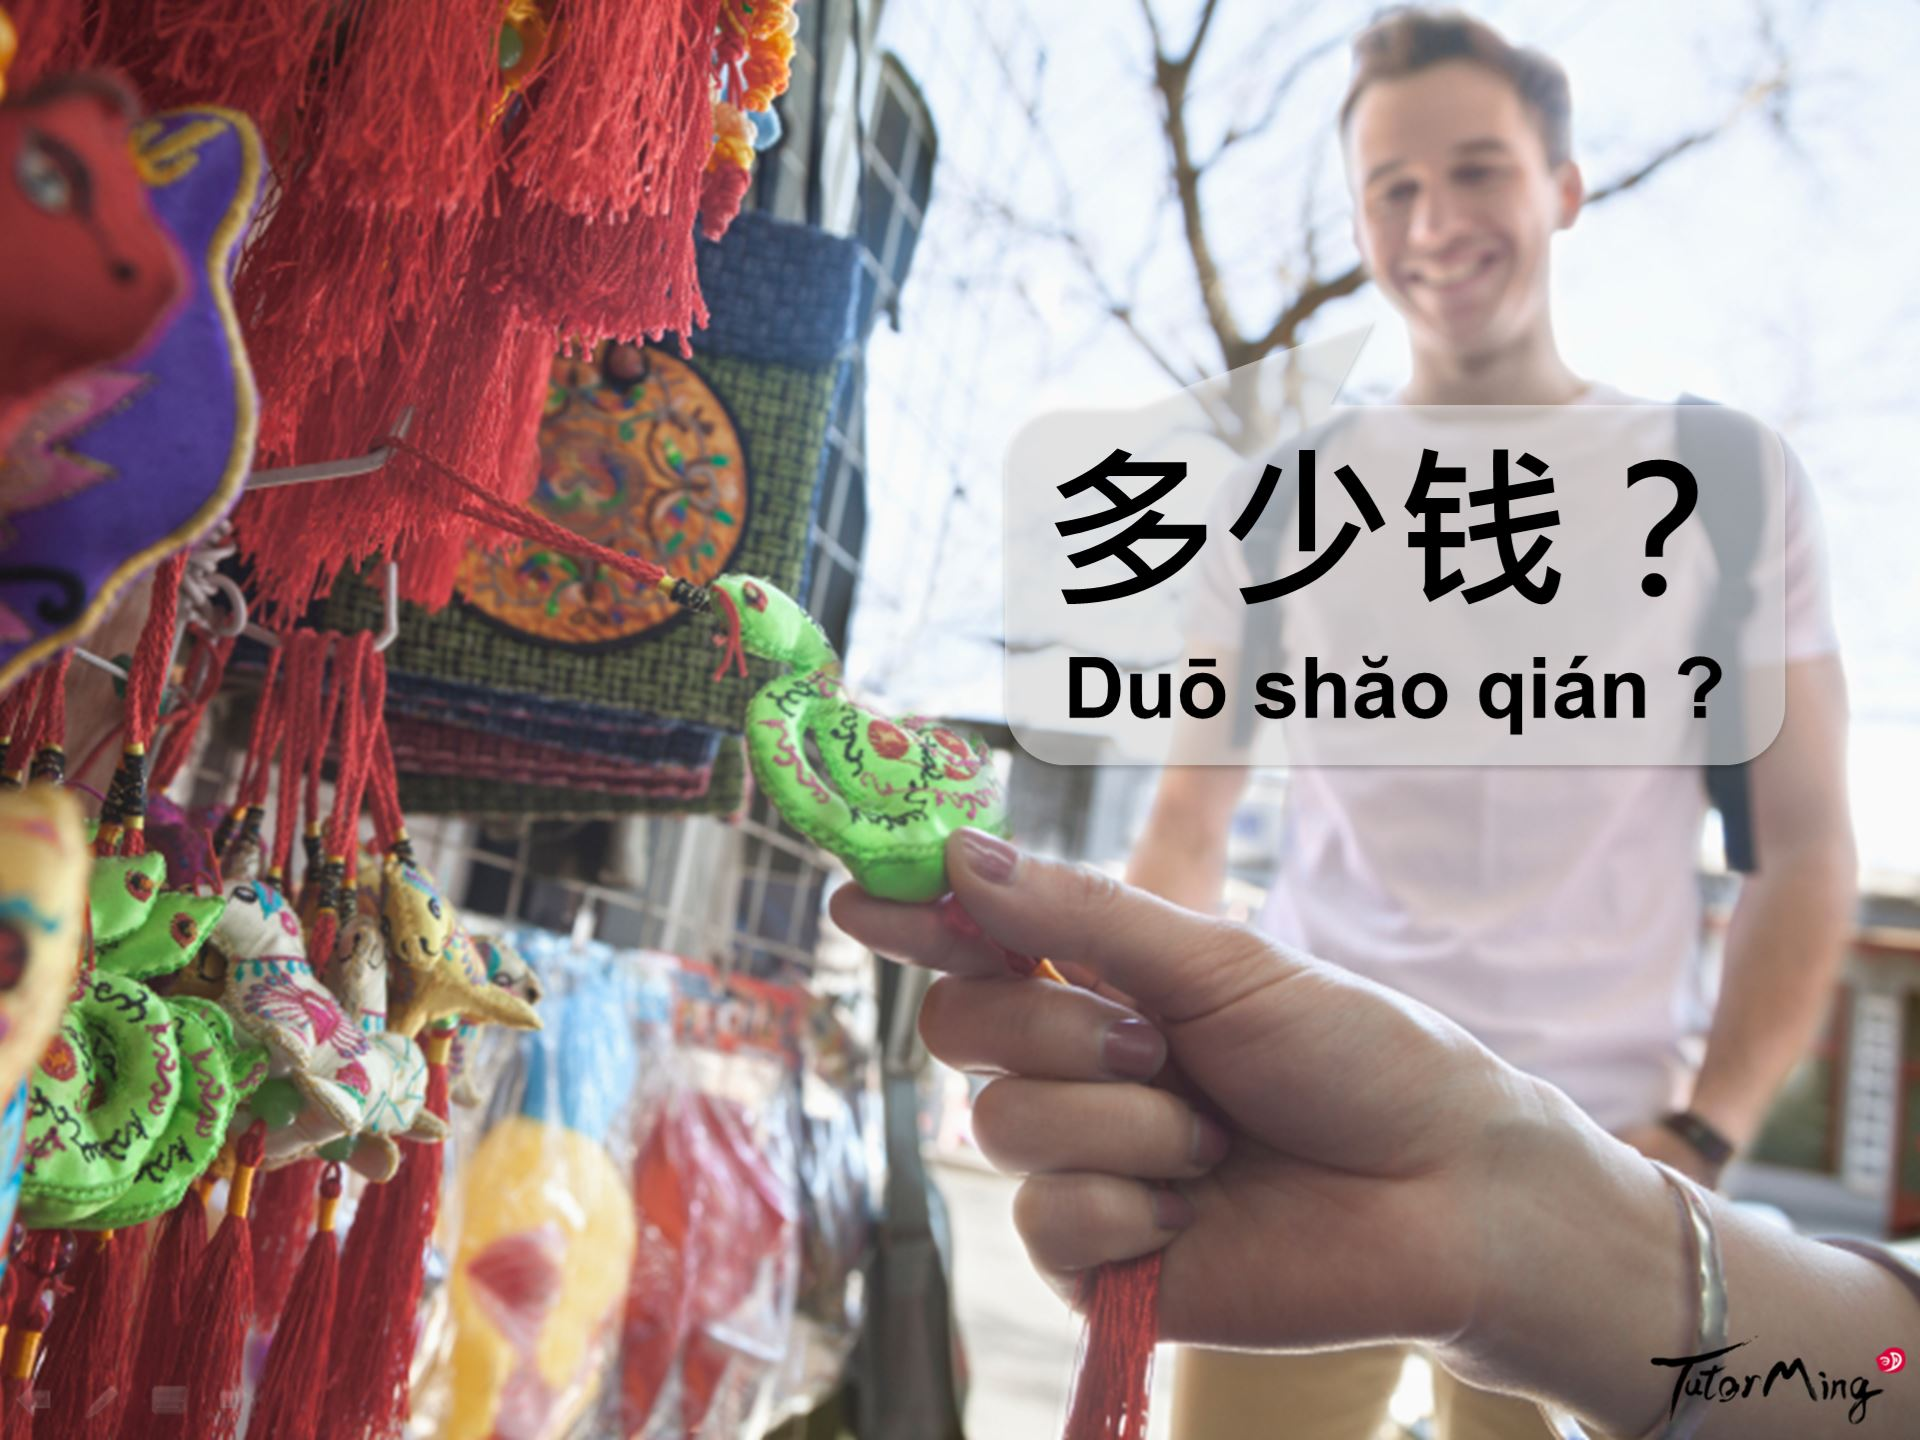 _How_much_money_in_Chinese.jpg